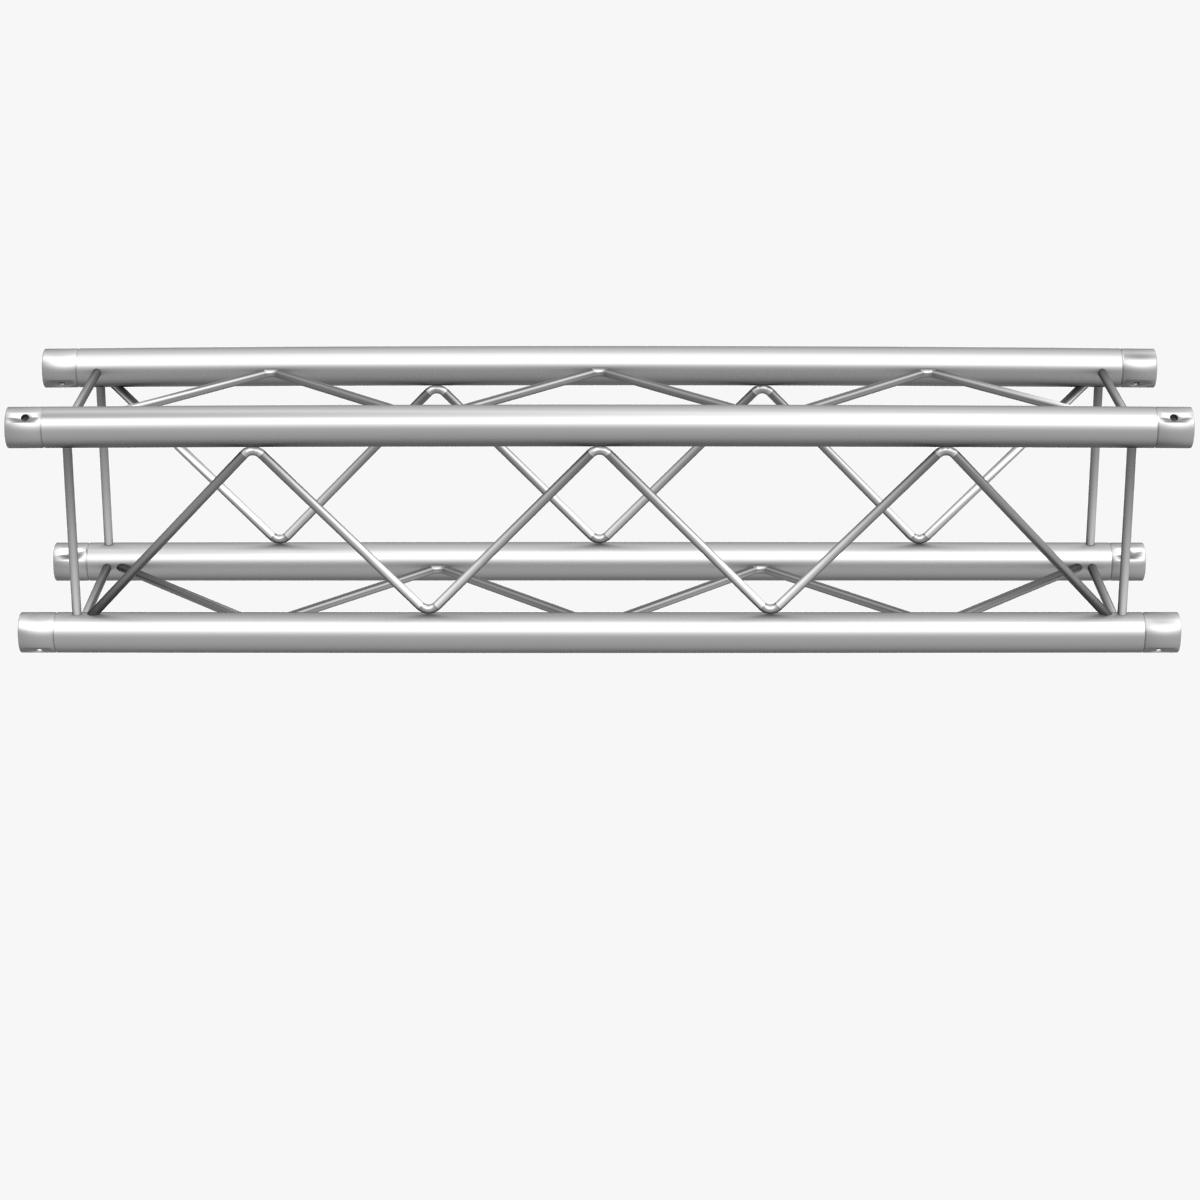 Light duty square truss collection 9 modular 3d model for Buy trusses